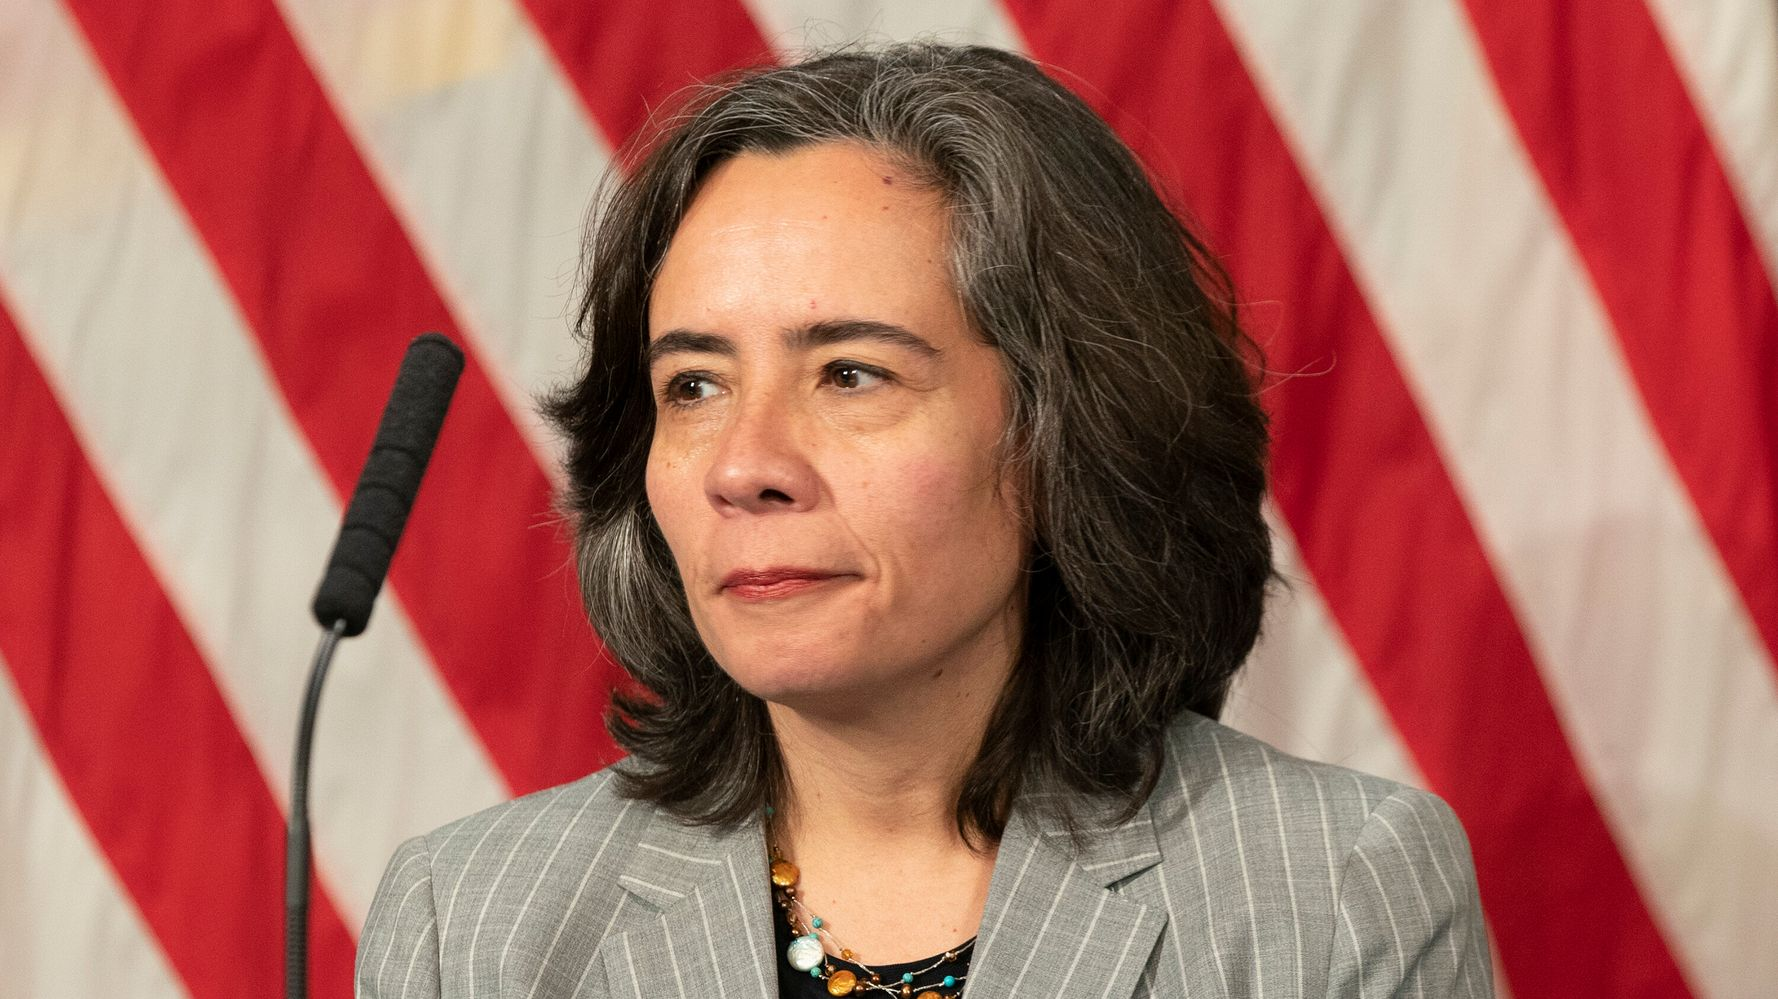 NYC Health Commissioner Resigns After 'Disappointment' With Coronavirus Response